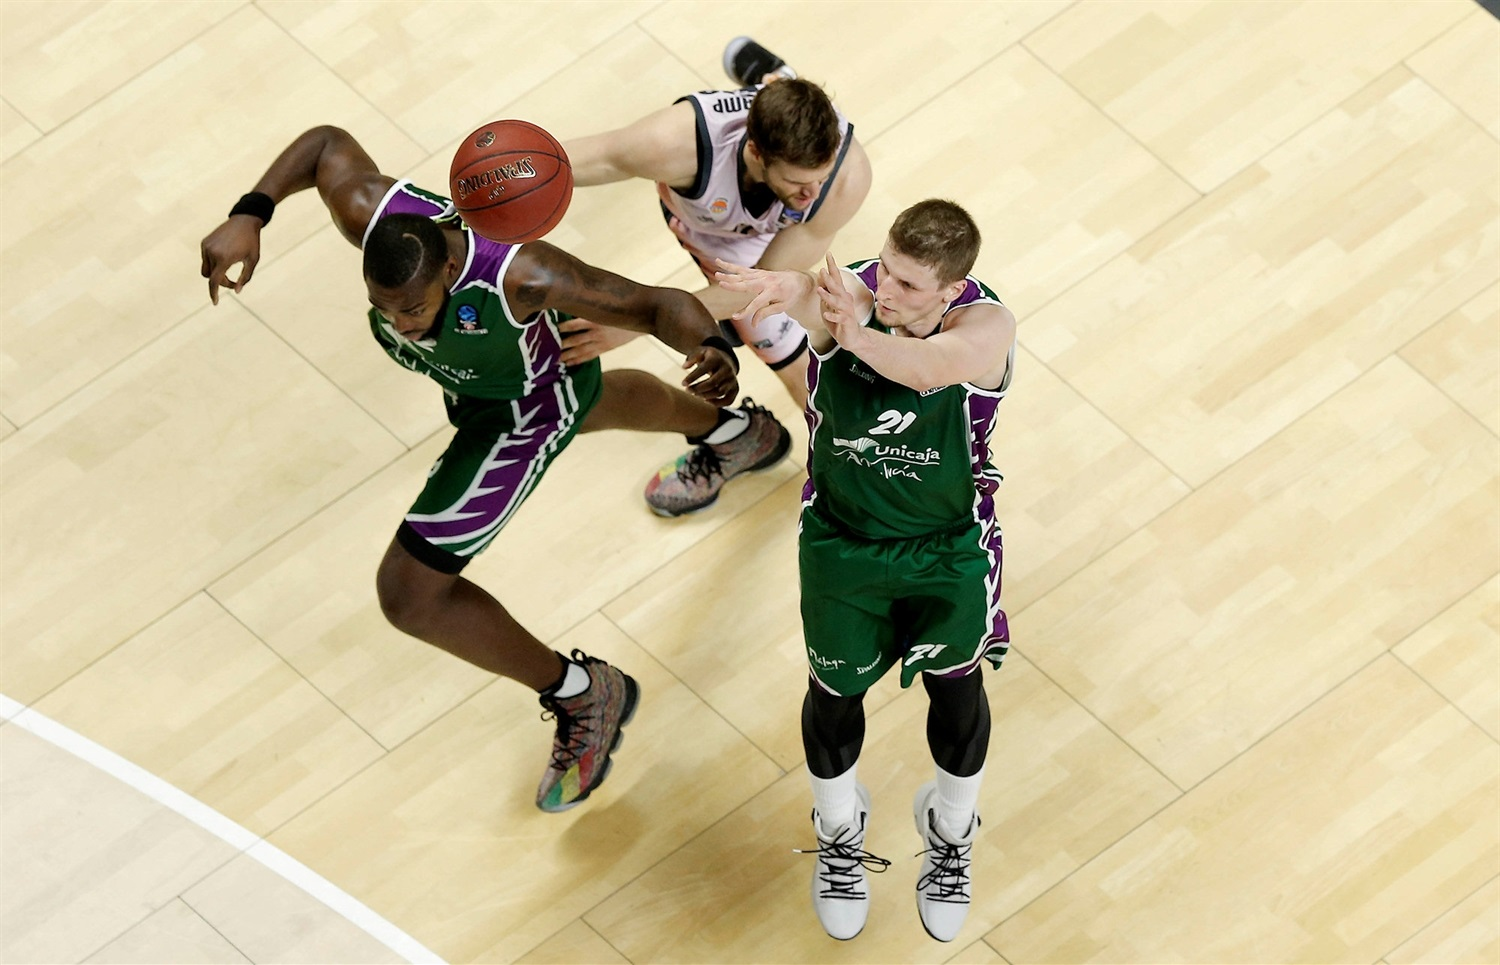 Adam Waczynski - Unicaja Malaga (photo Unicaja - Mariano Pozo) - EC18